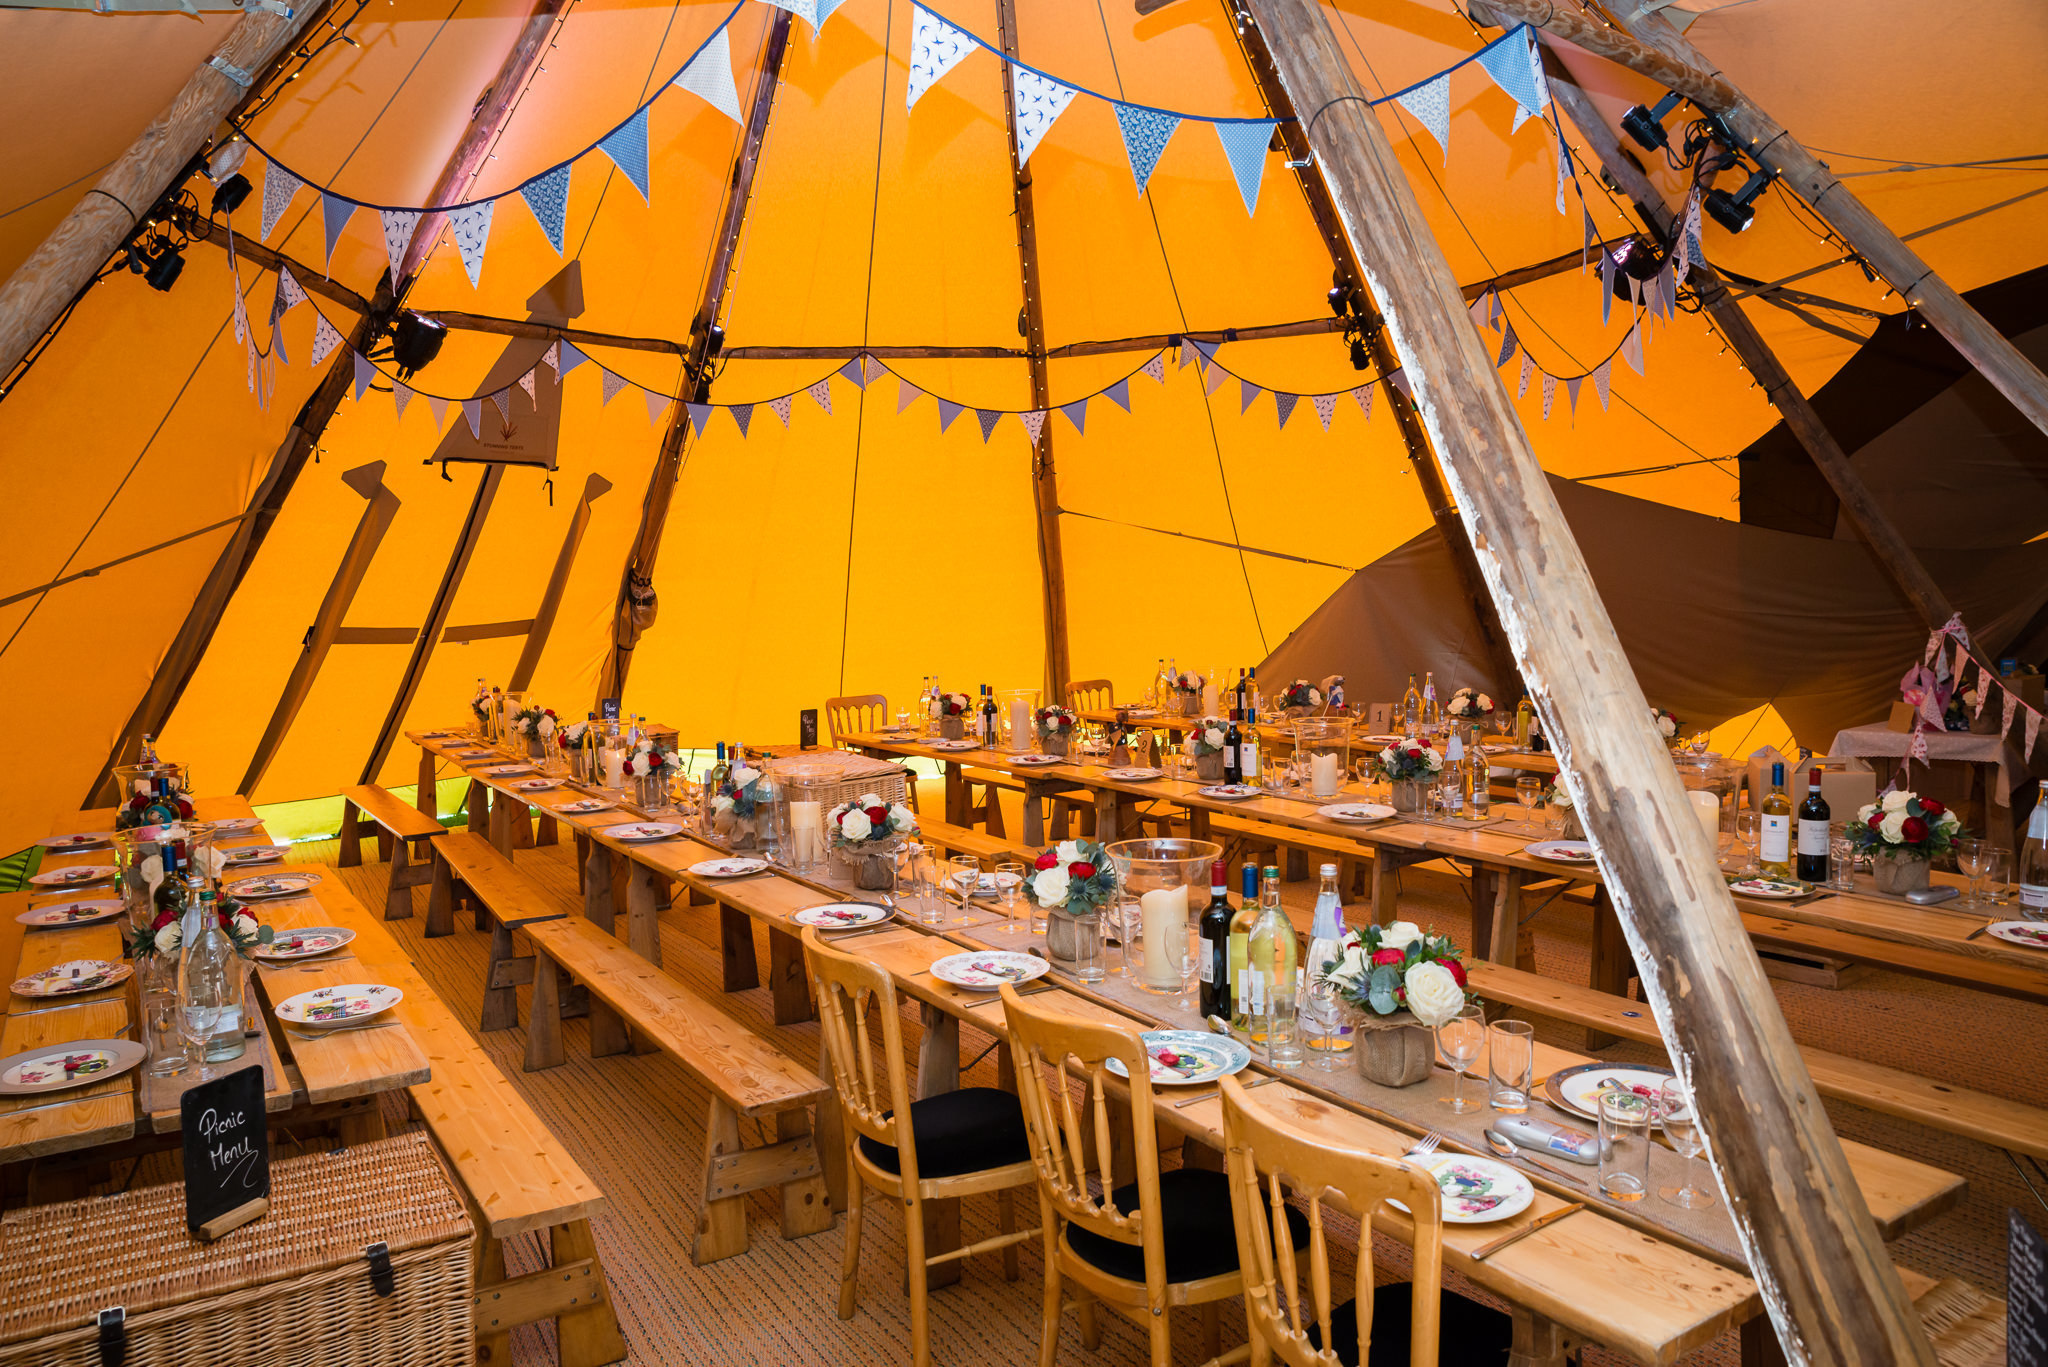 Inside the tipi at Woodoaks Farm in Rickmansworth, Hertfordshire